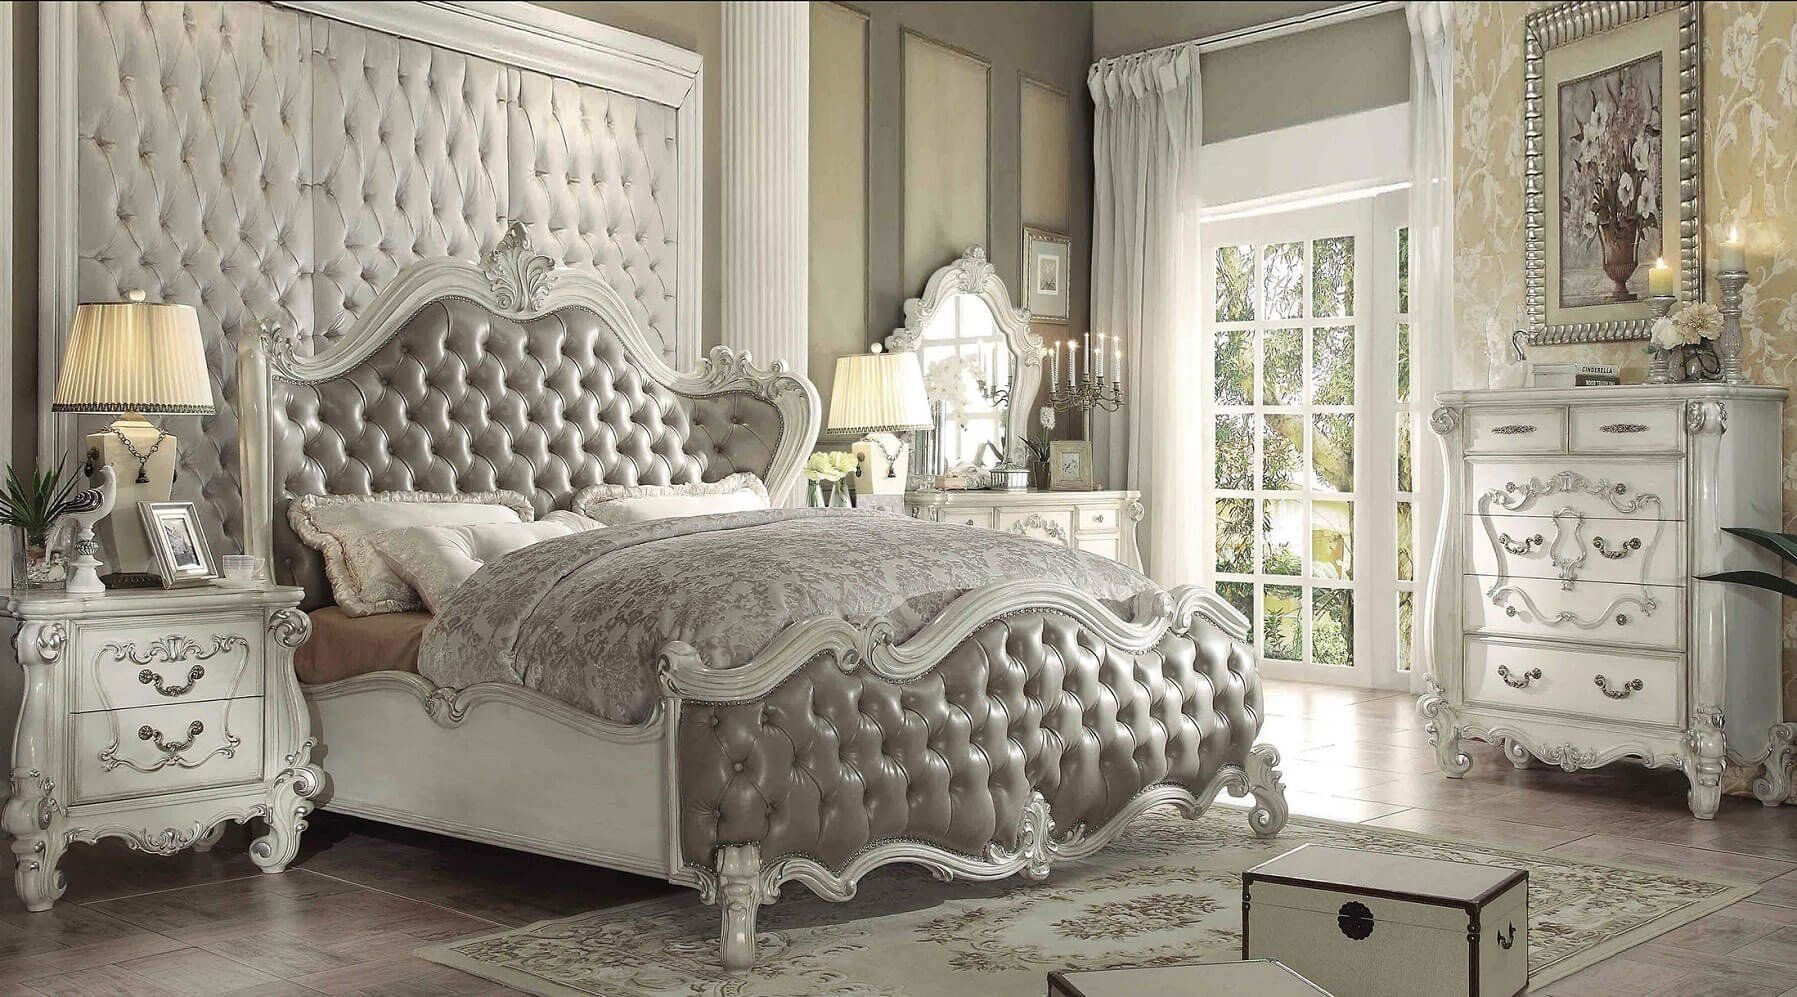 Monte Carlo Bedroom Set Best Of Acme Versailles Bedroom Set with Queen Bed Nightstand